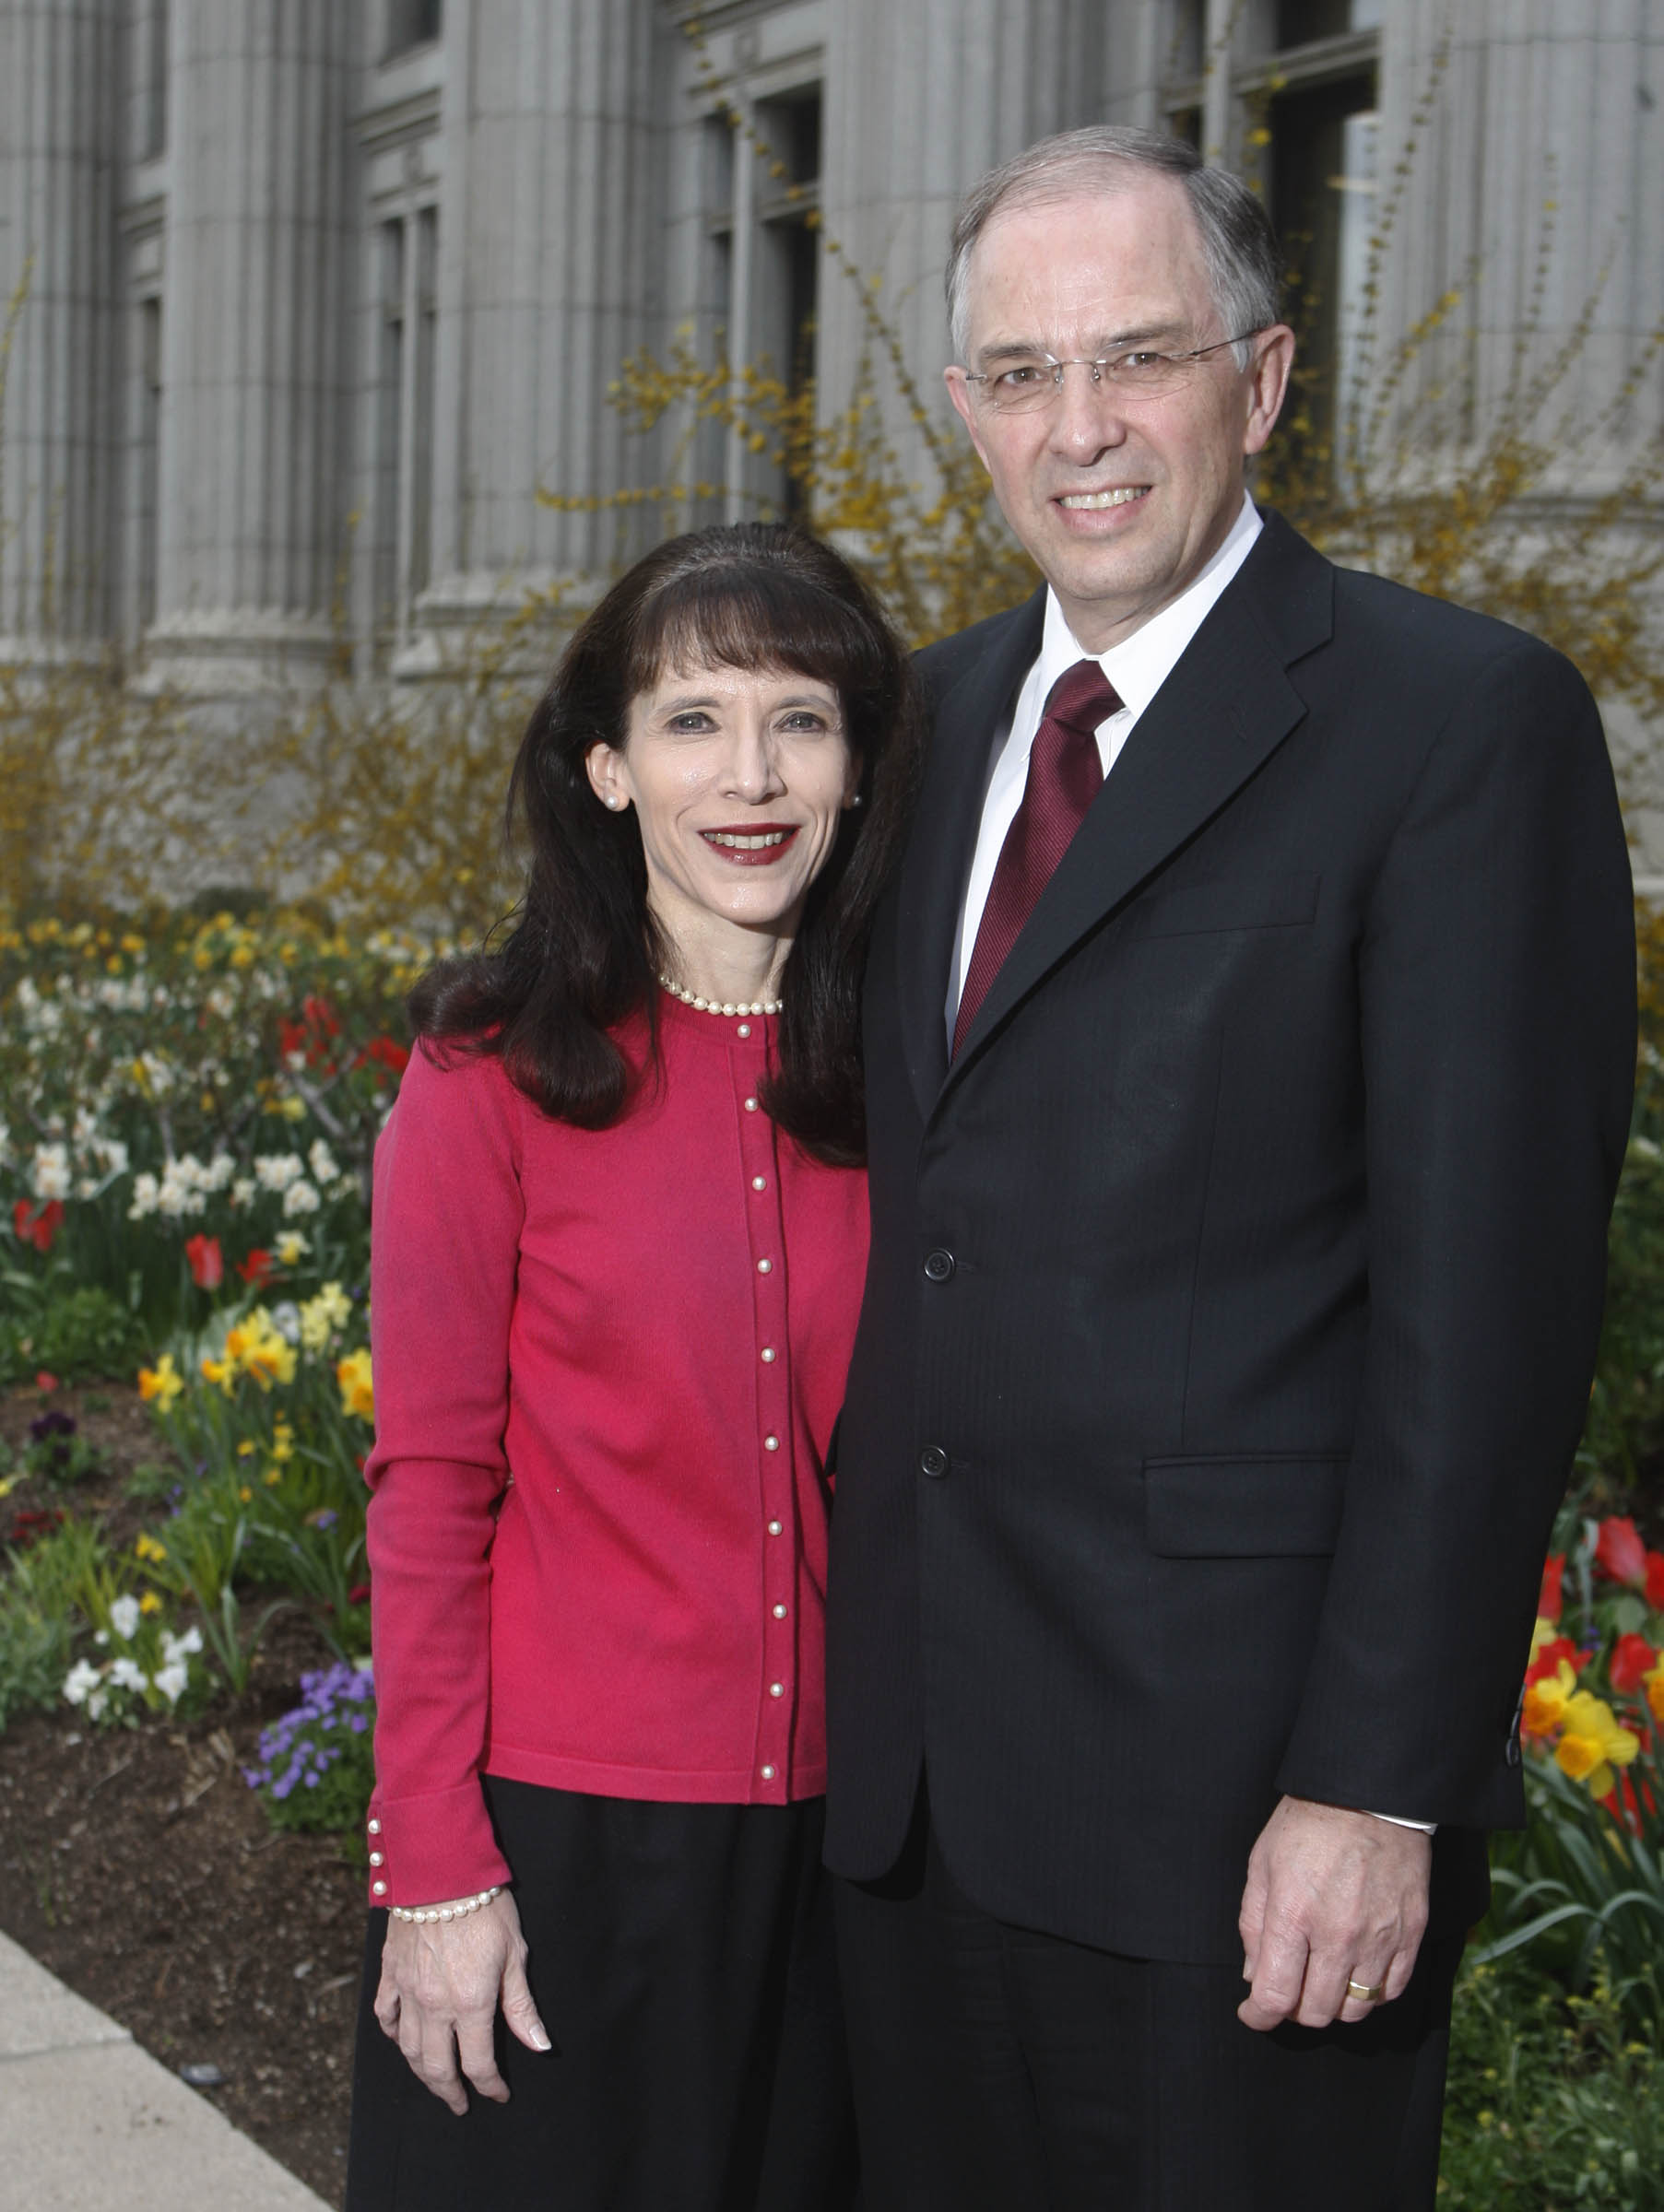 Elder Neil L. Andersen and his wife, Sister Kathy Andersen on Tuesday, April 14, 2009.